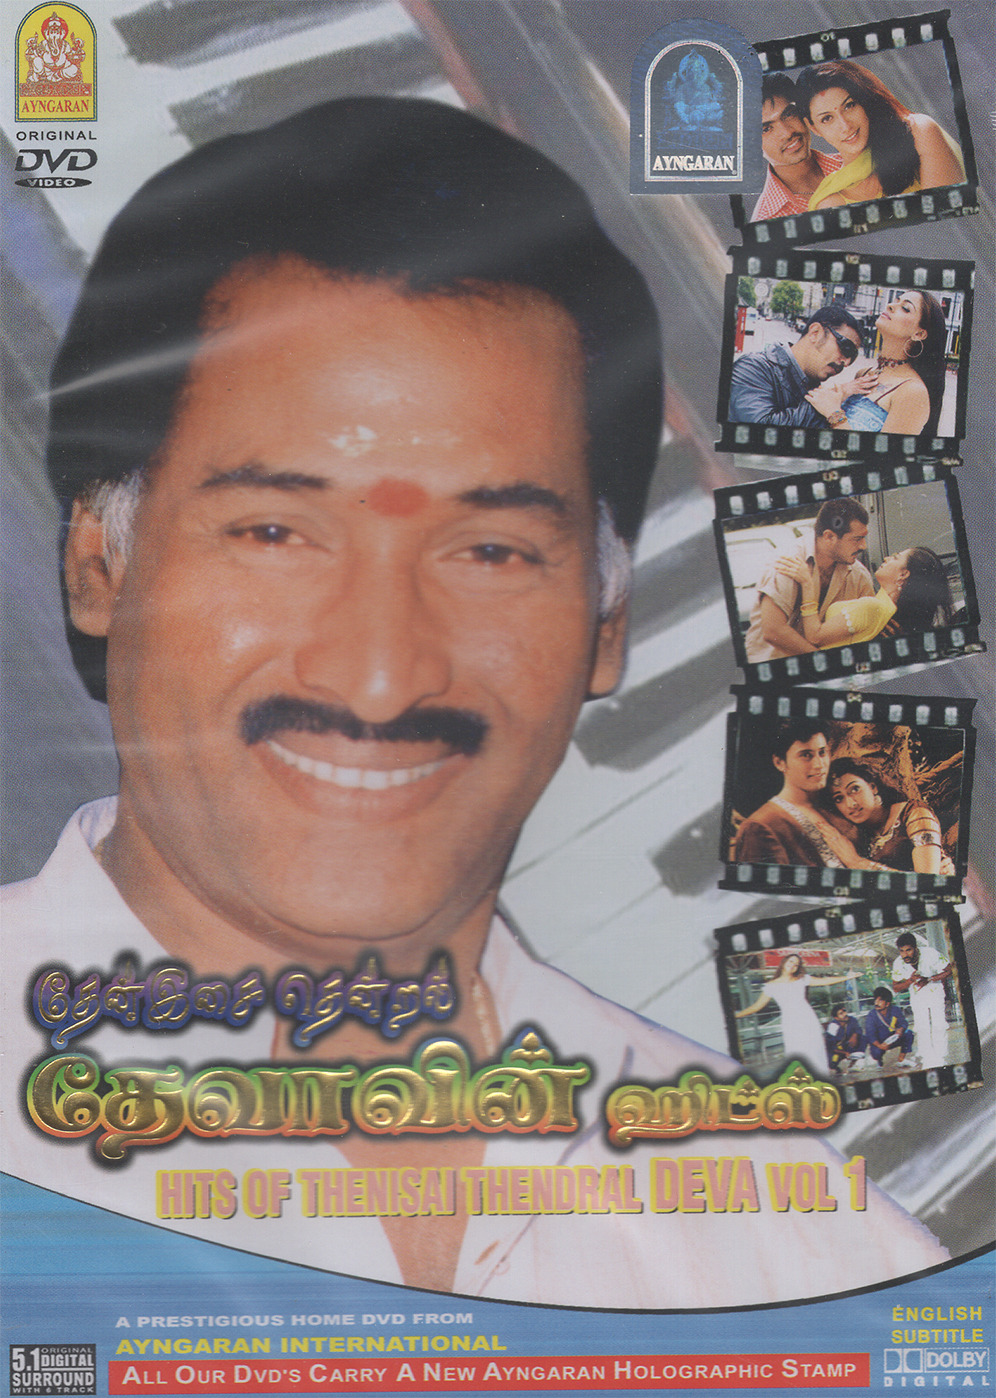 Hits Of Thenisai Thendral Deva Vol 1